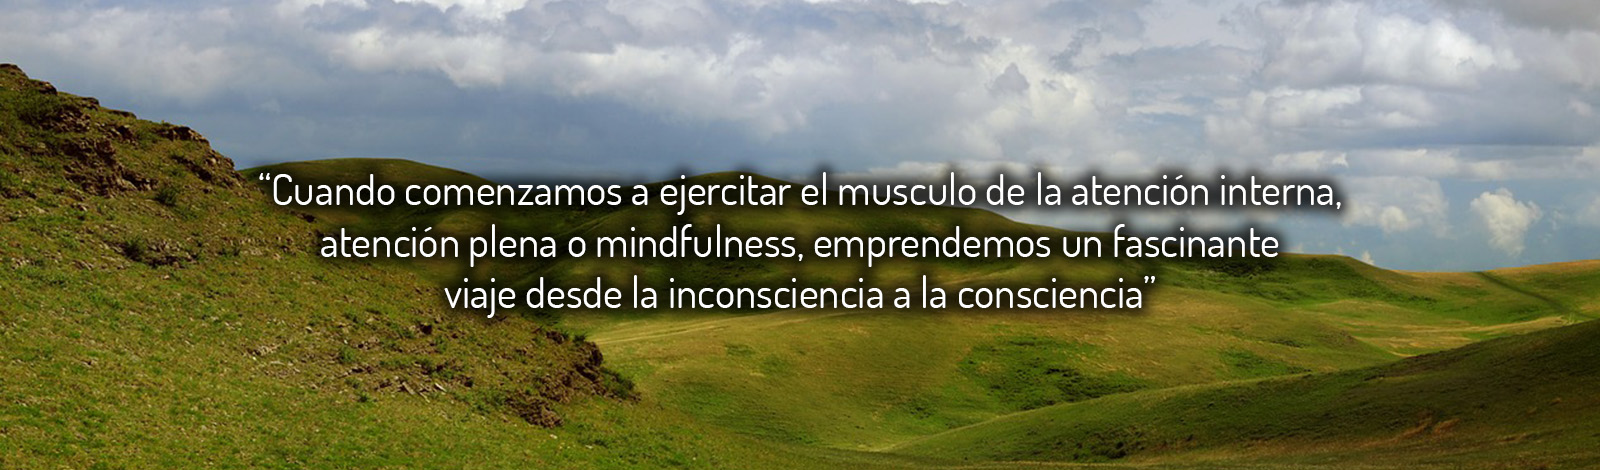 13slider-especialistas-mindfulness